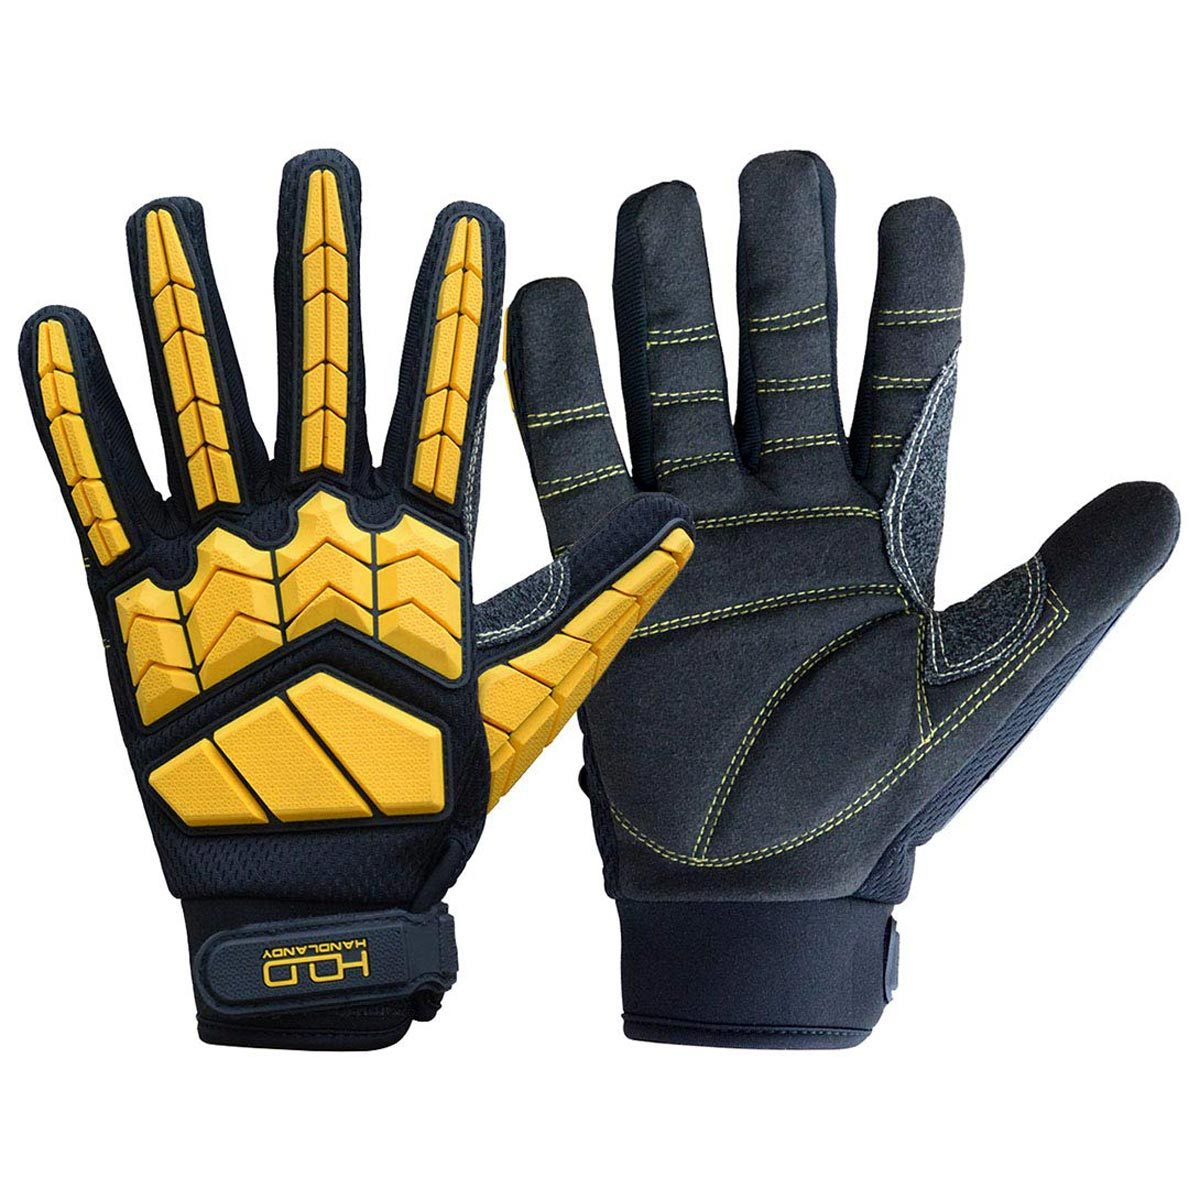 Vibration-reducing-gloves